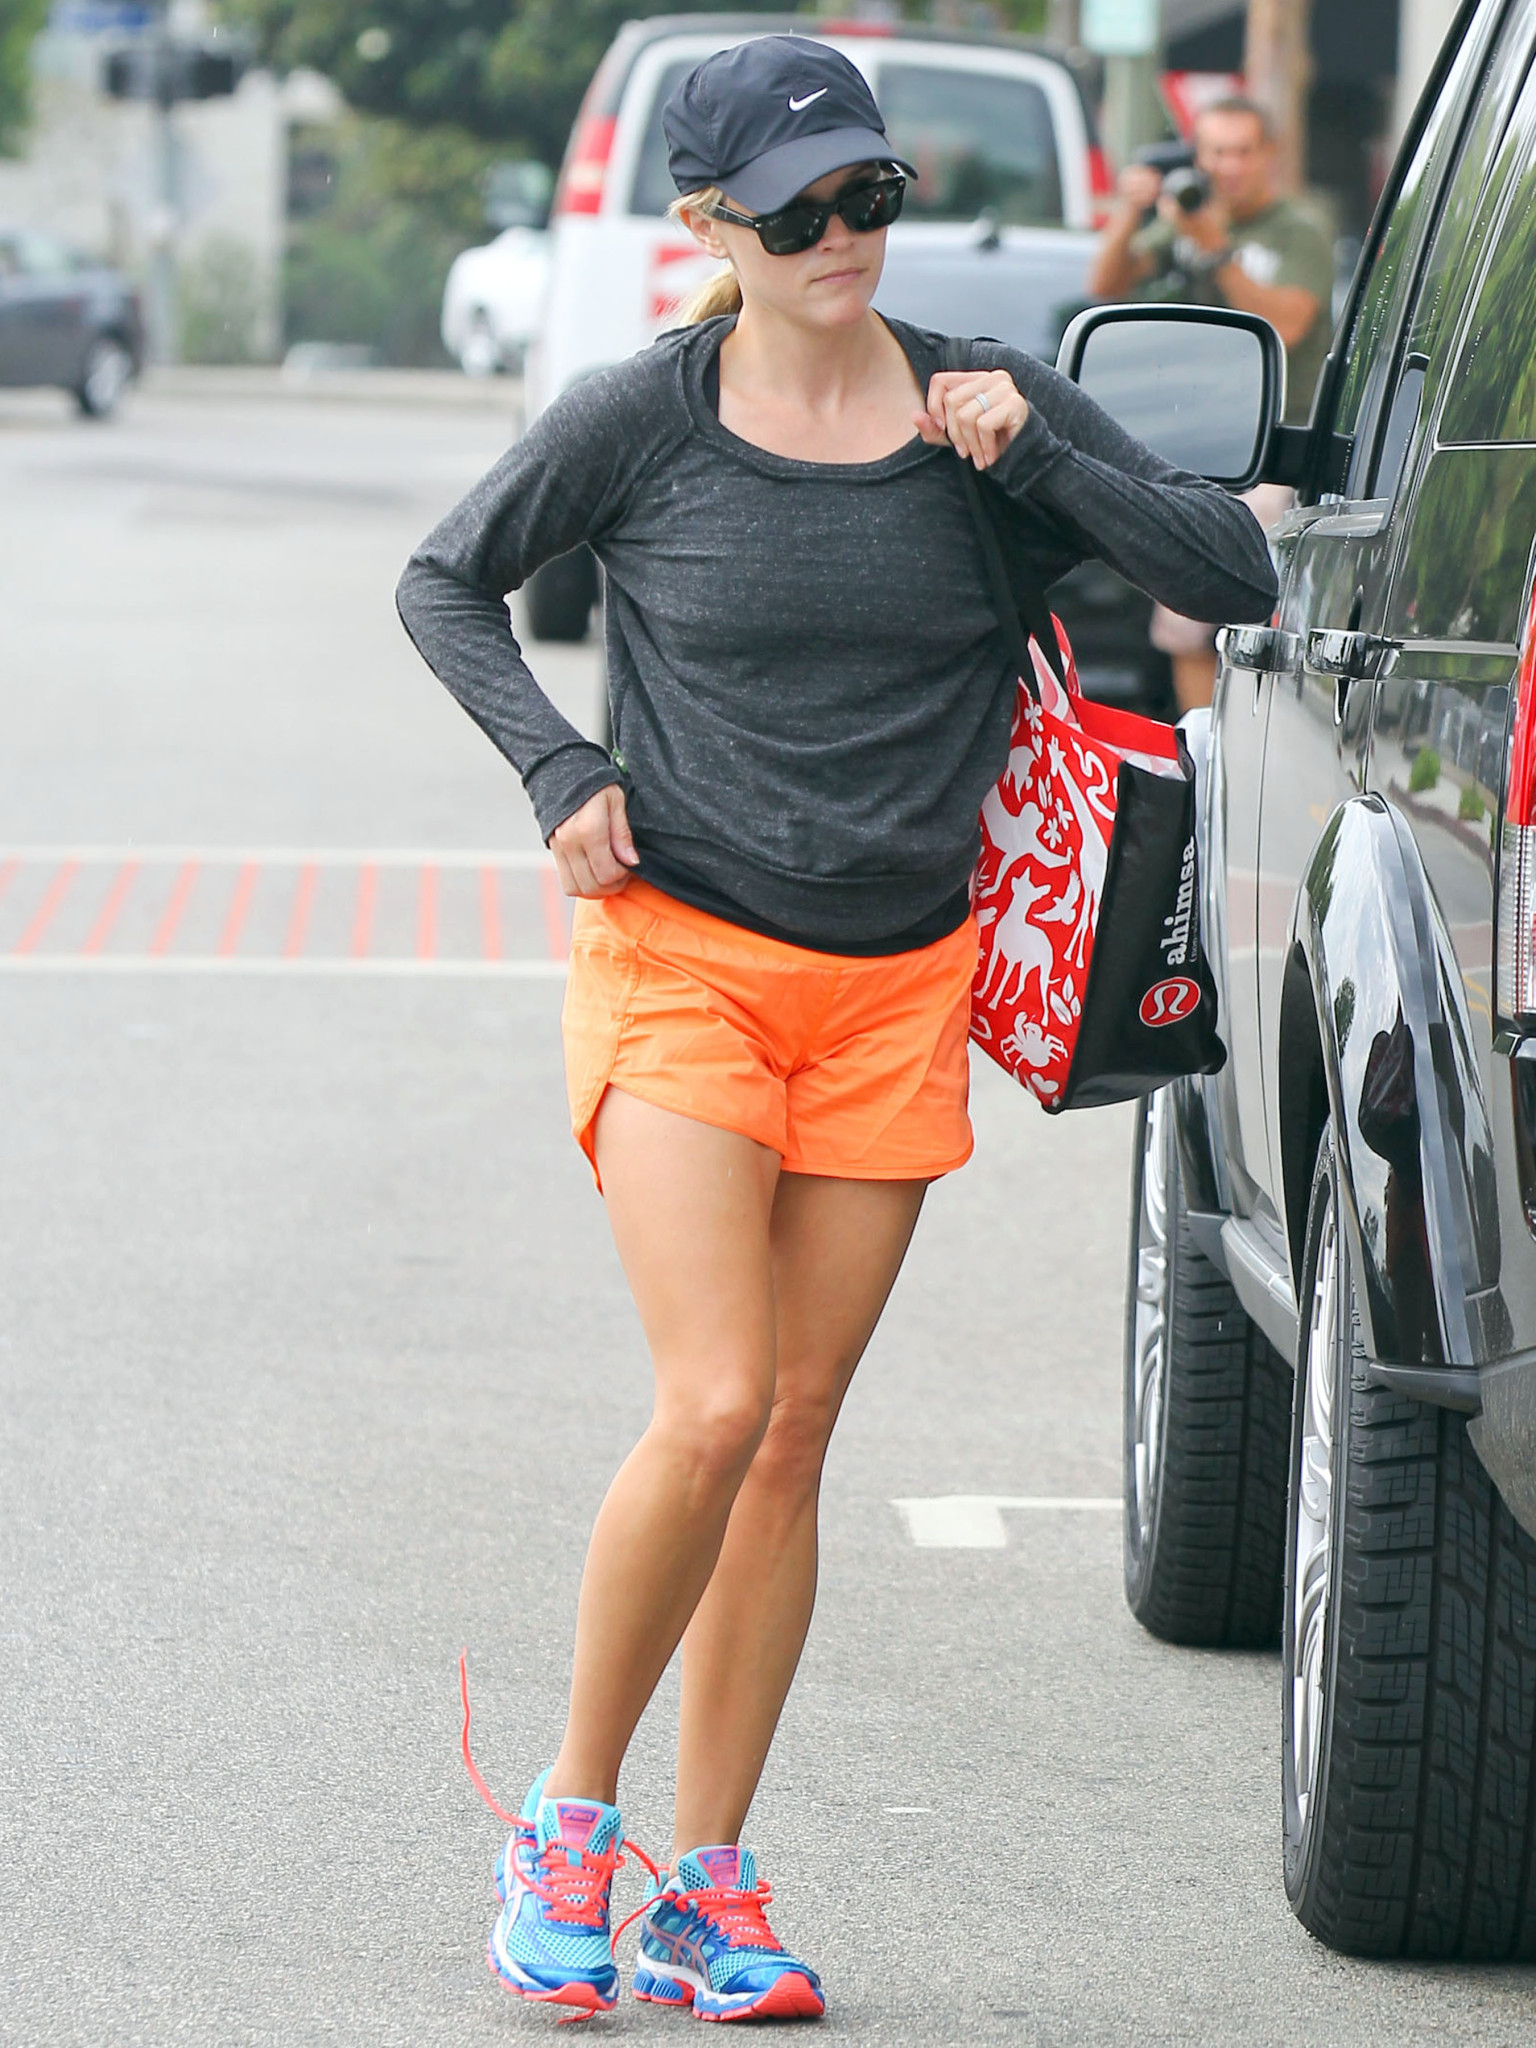 Reese Witherspoon S Slender Legs Are On Full Display In